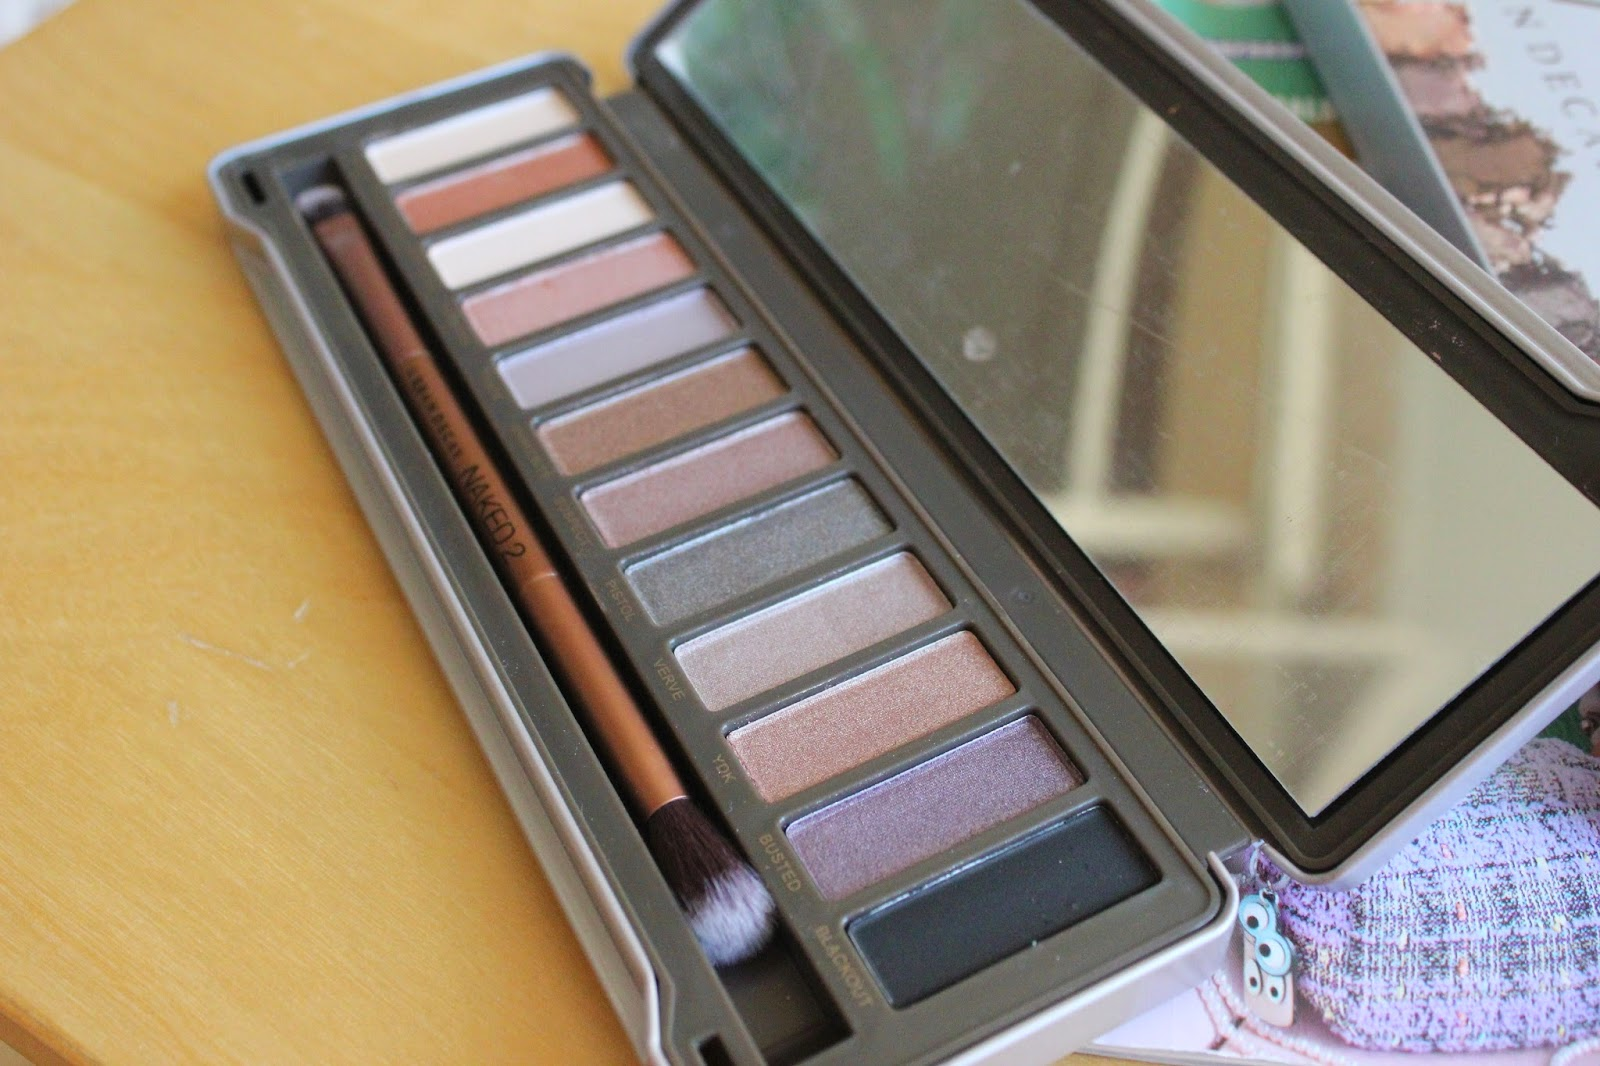 georgie-georgina-minter-brown-blogger-beauty-makeup-urban-decay-naked-2-palette-eyeshadows-review